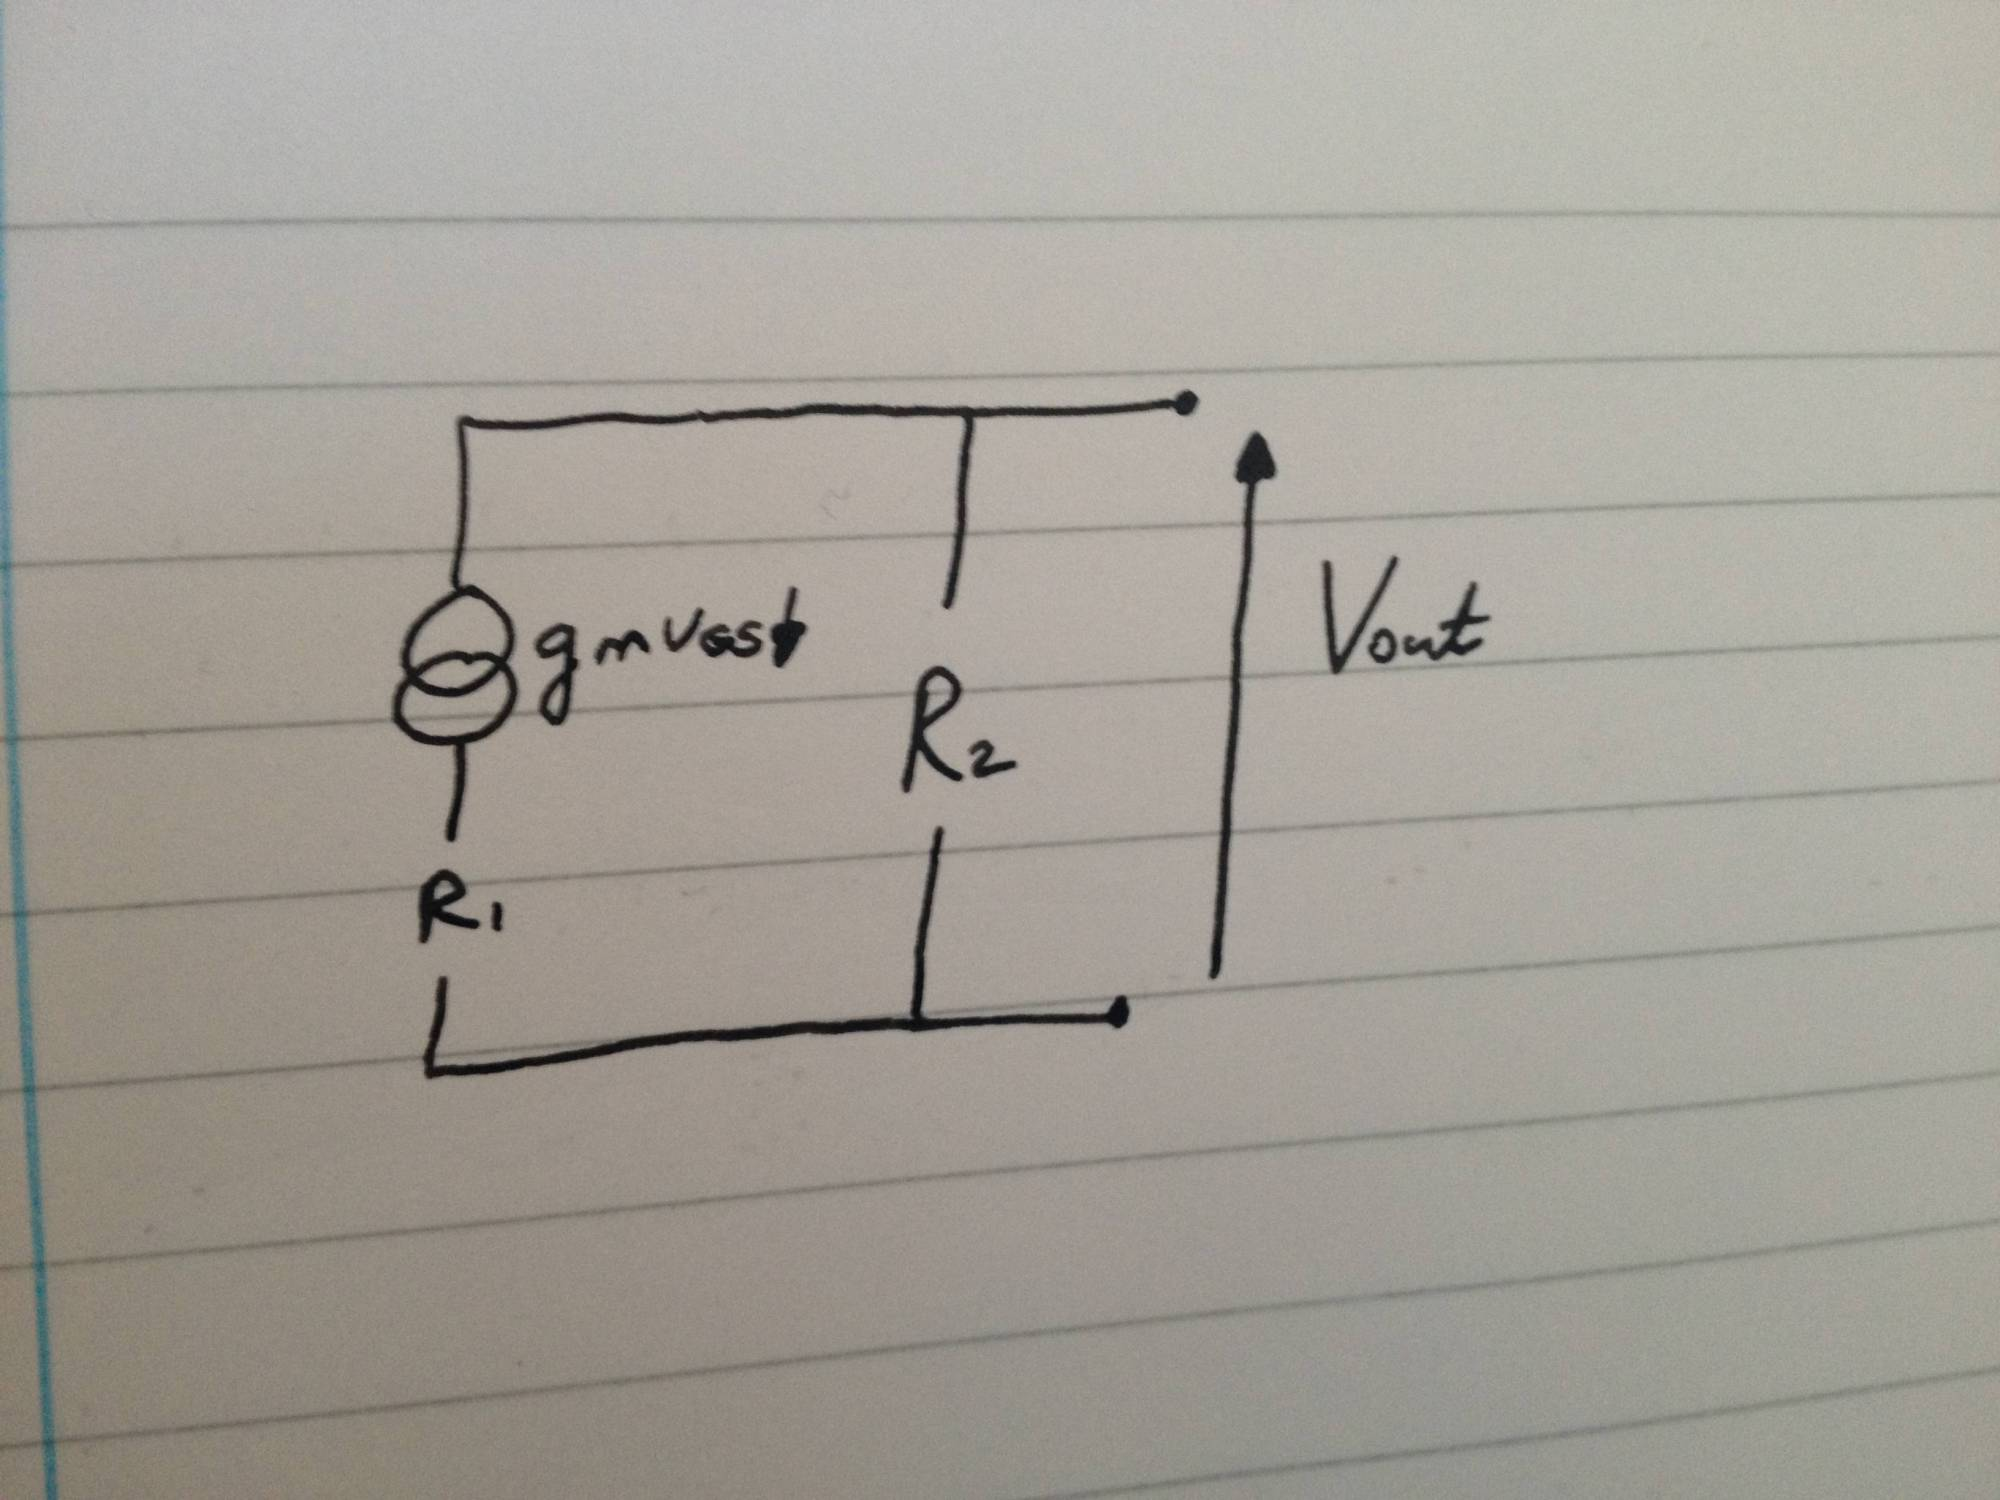 hight resolution of circuit diagram of the problem